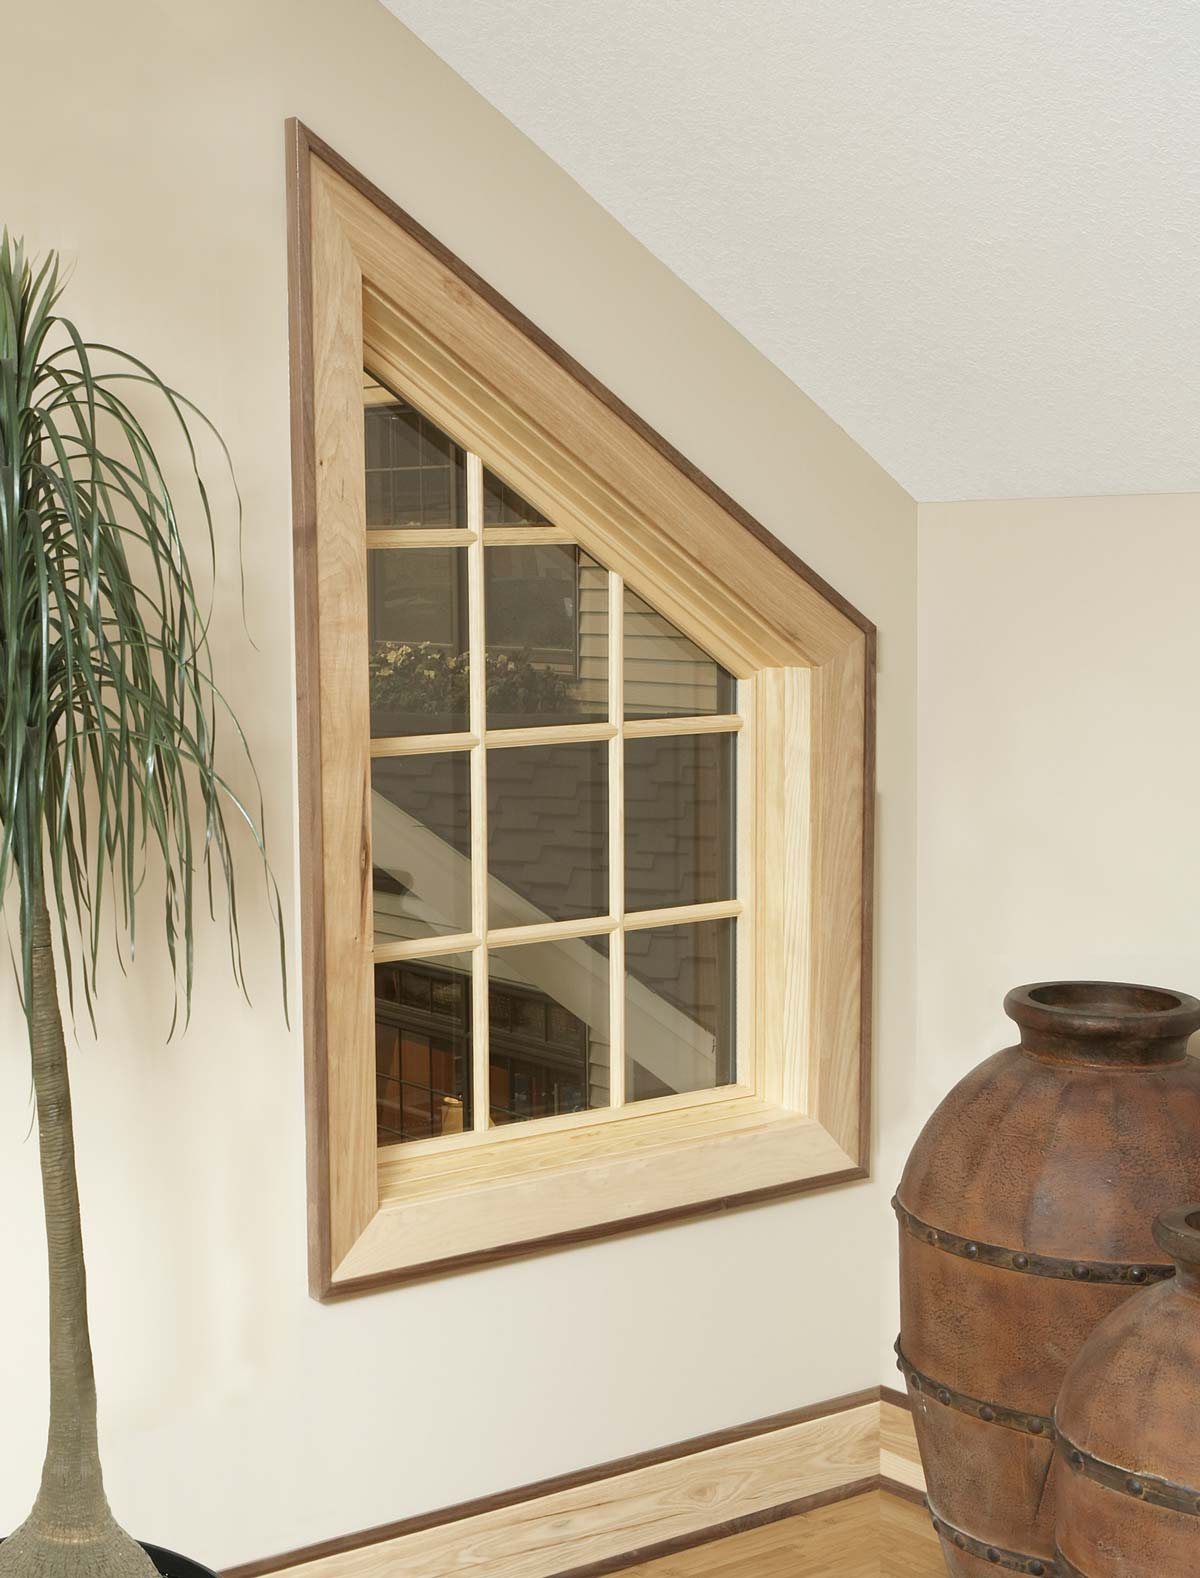 Whimsical triangular window with a sleek frame